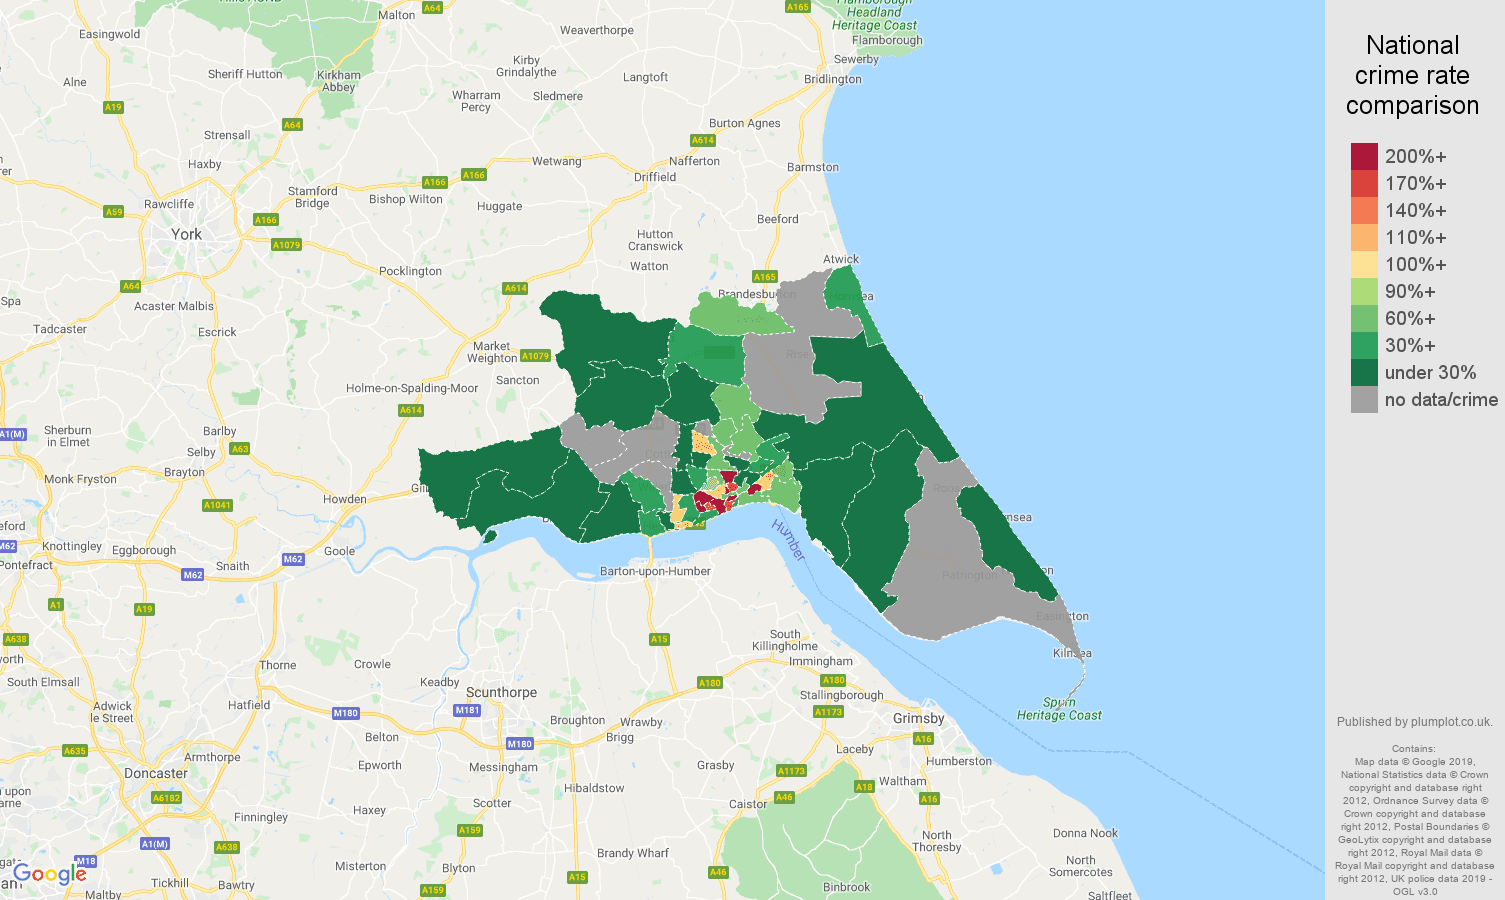 Hull possession of weapons crime rate comparison map